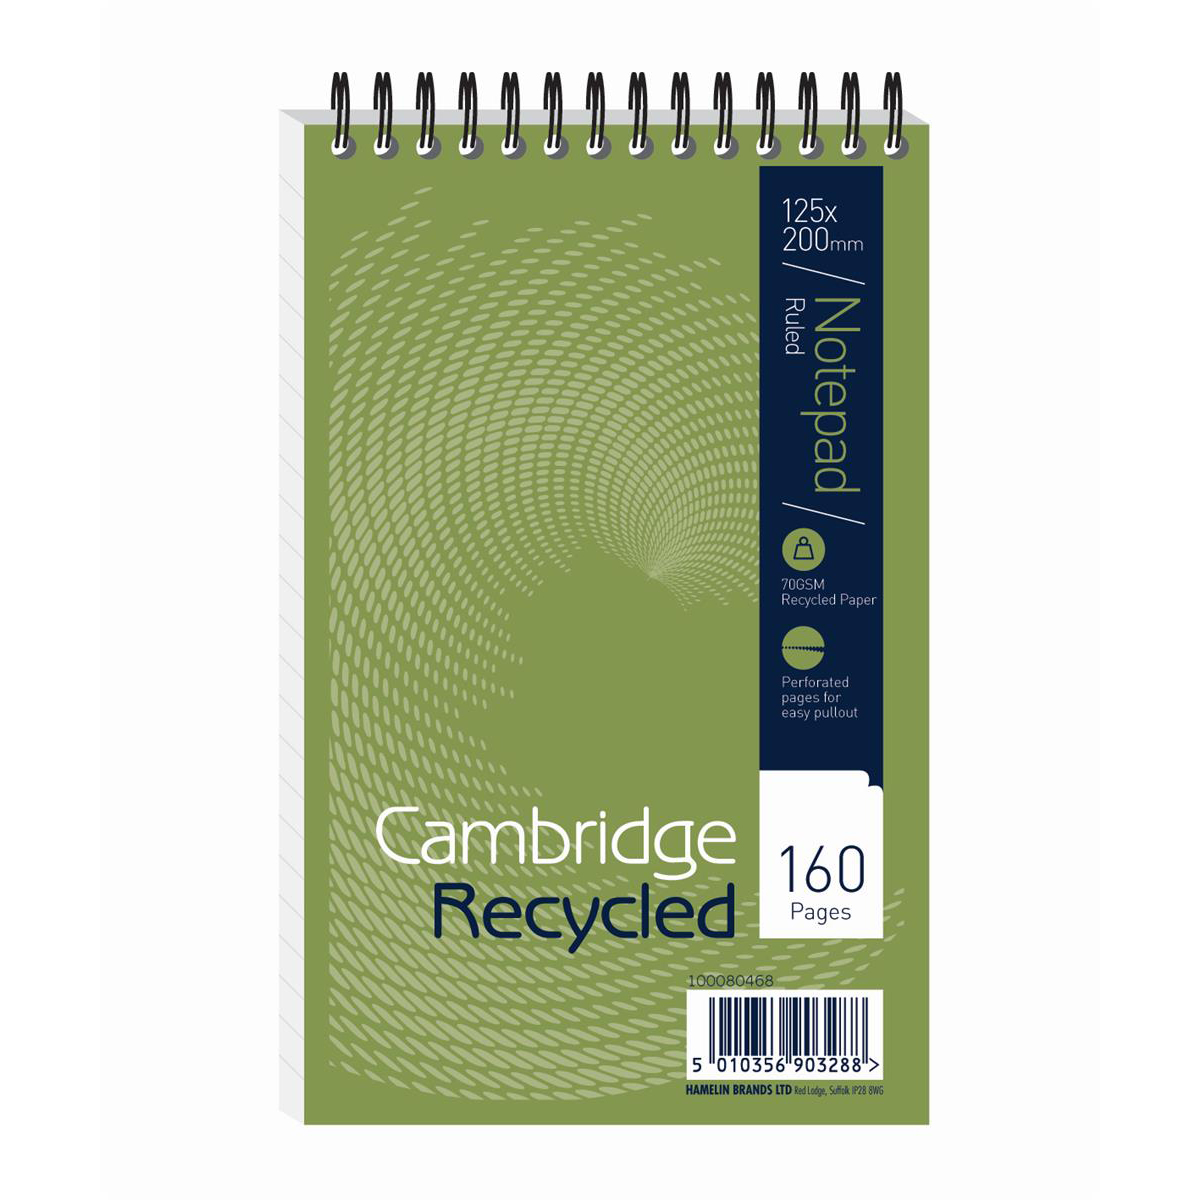 Cambridge Recycled Reporters Notebook 70gsm Ruled and Perforated 160pp 125x200mm Ref 100080468 Pack 10